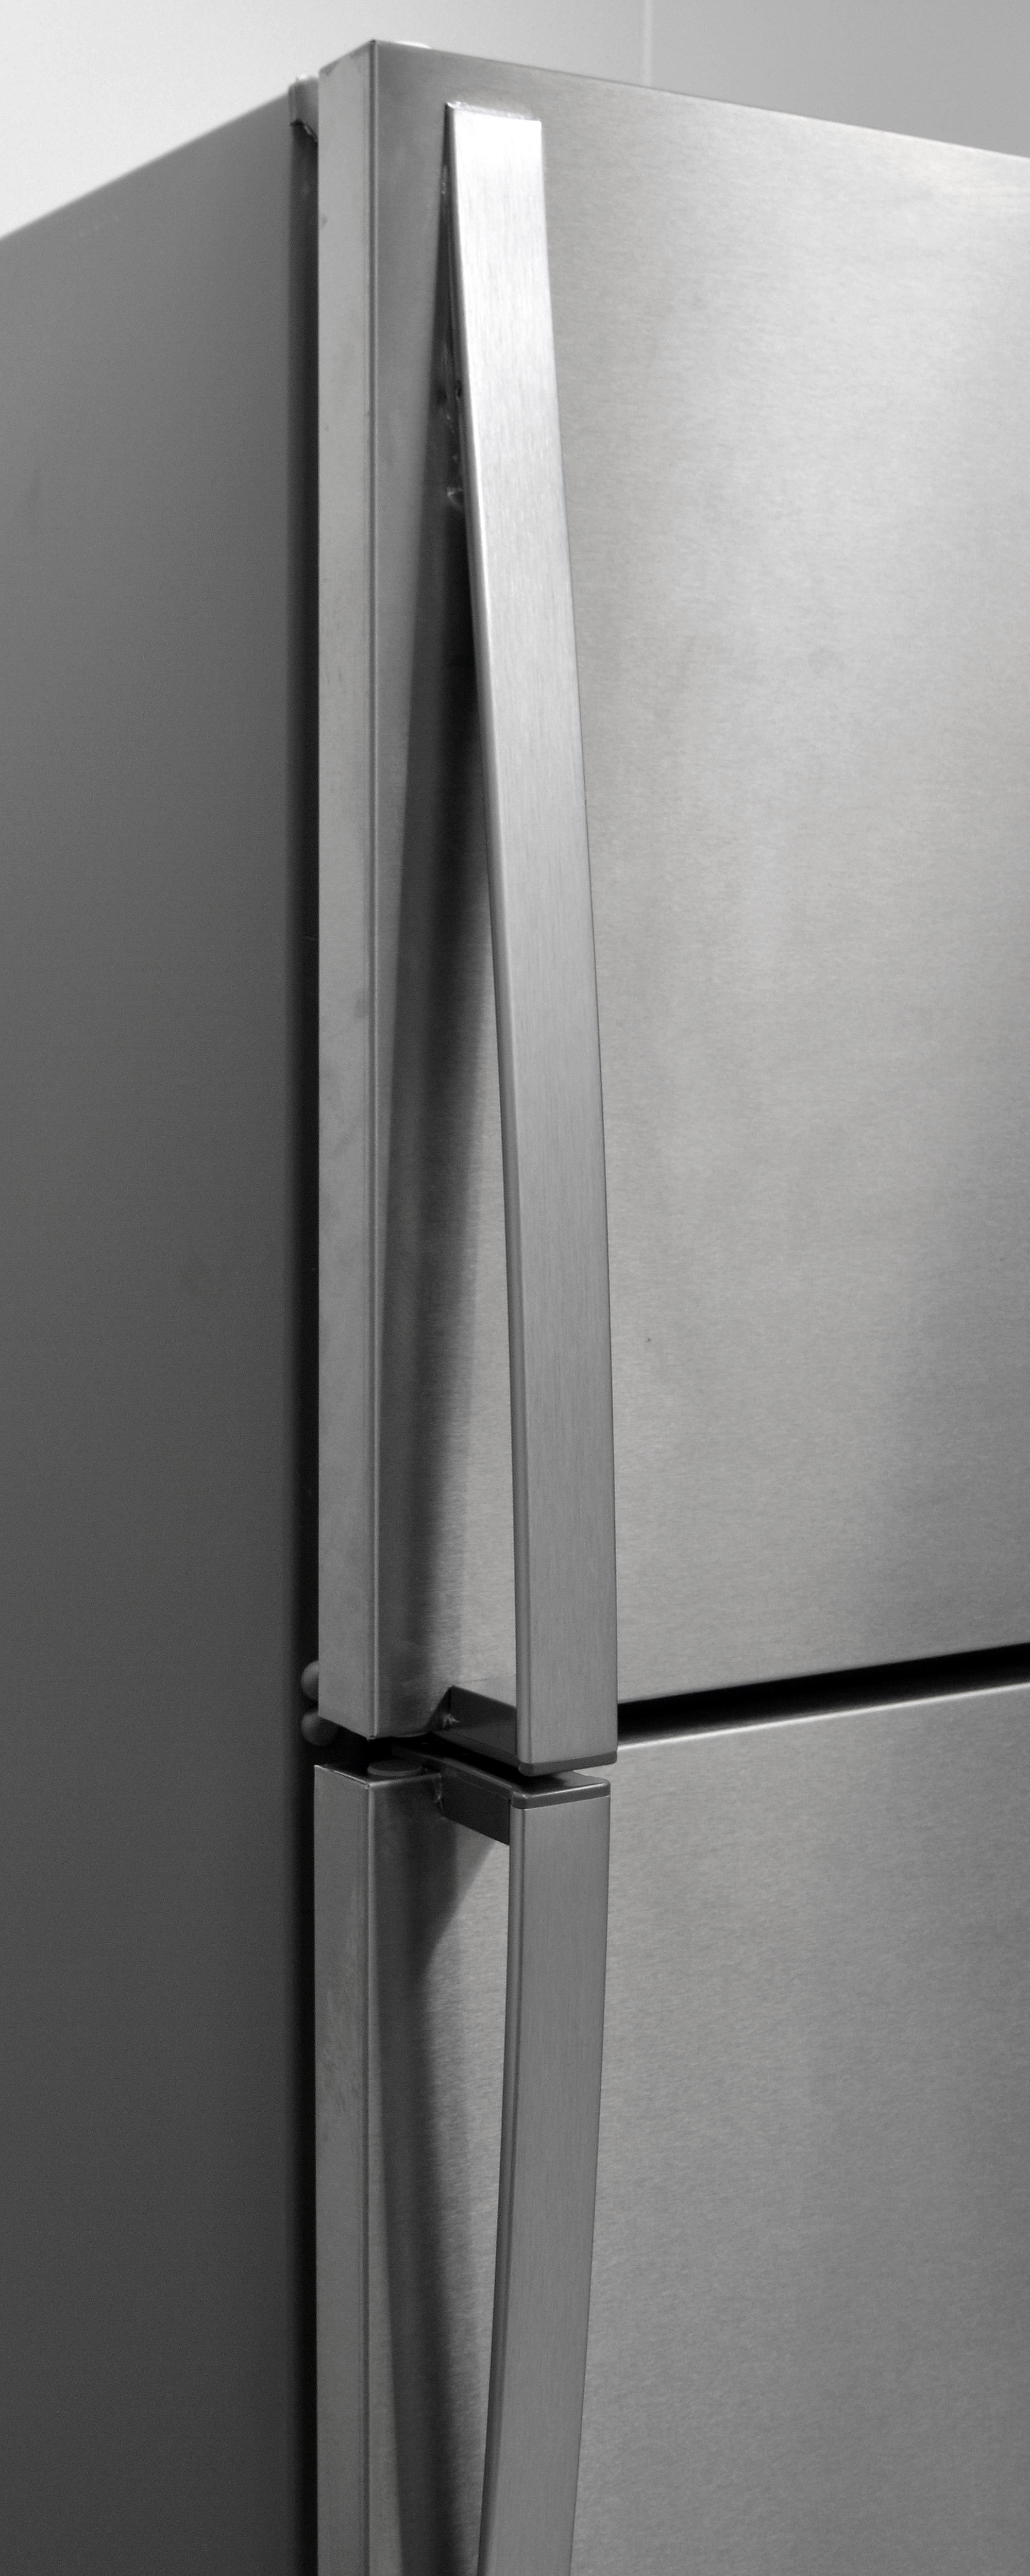 The Whirlpool WRT311FZDM's metallic handles look and feel nice against the stainless exterior.